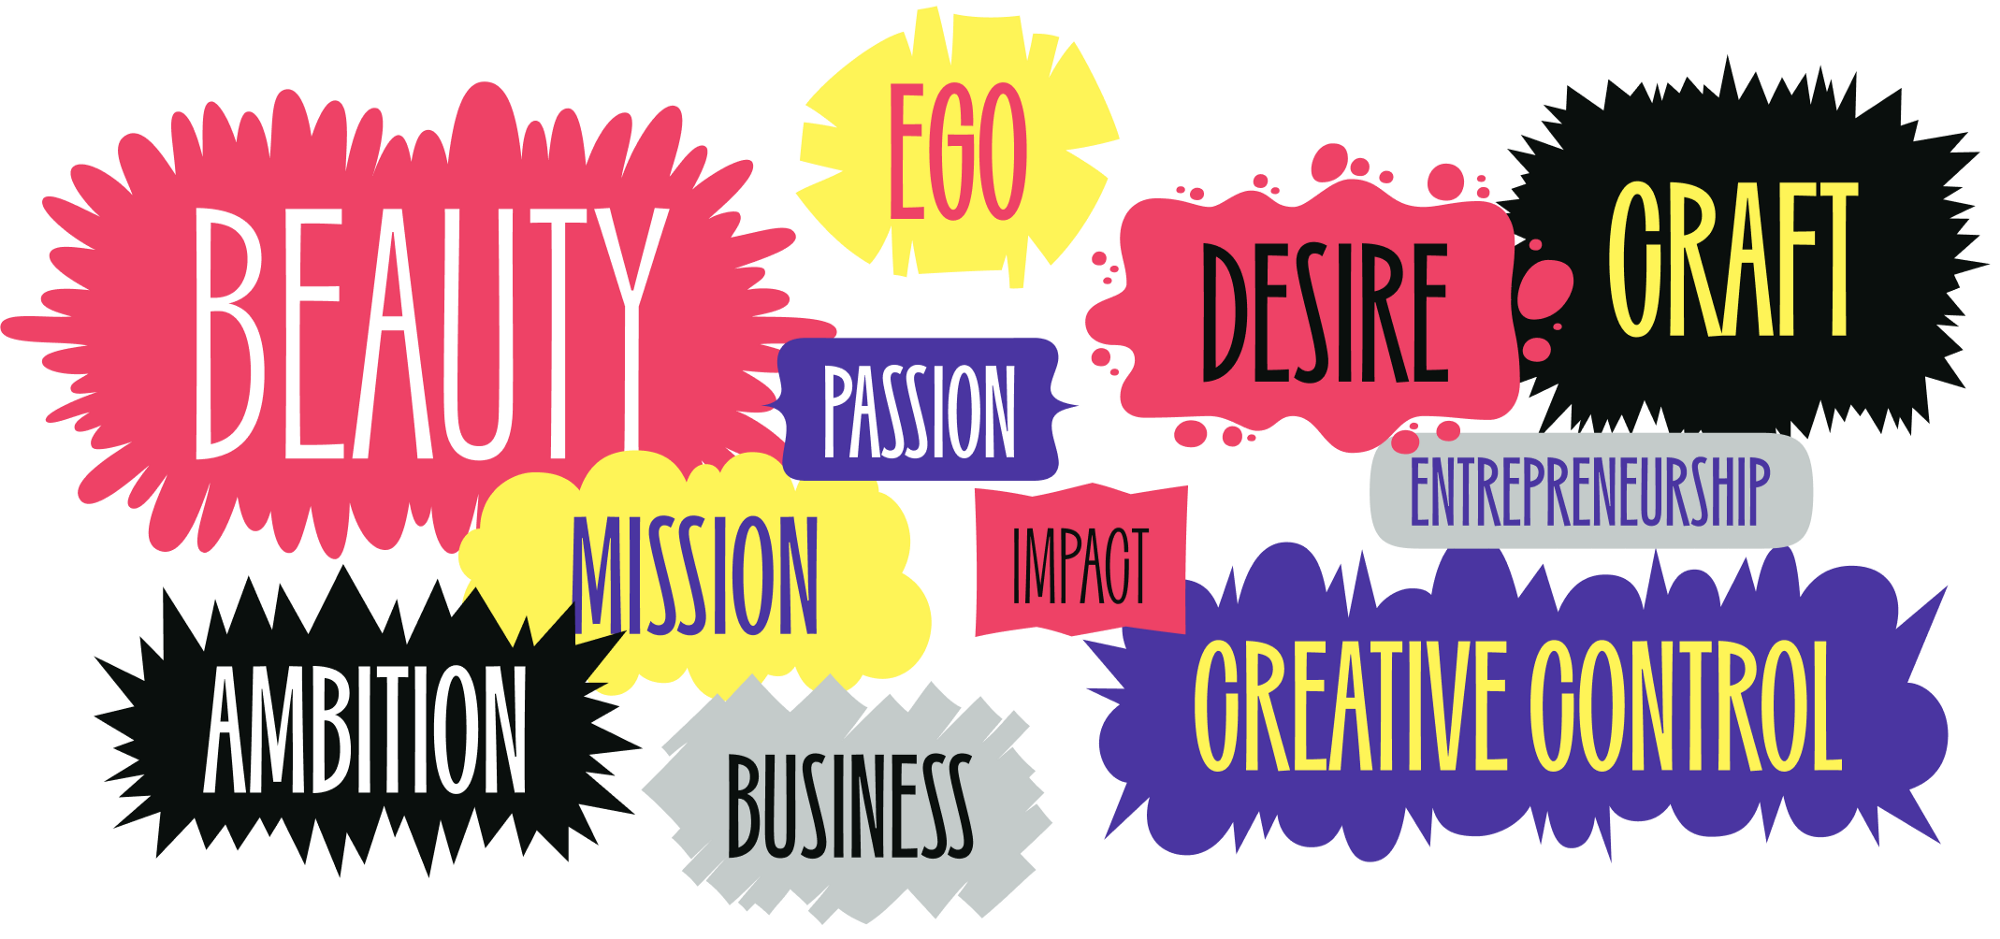 What drives you? Is it beauty, passion, the mission, impact, business, entrepreneurship, craft, ego, ambition, creative control?